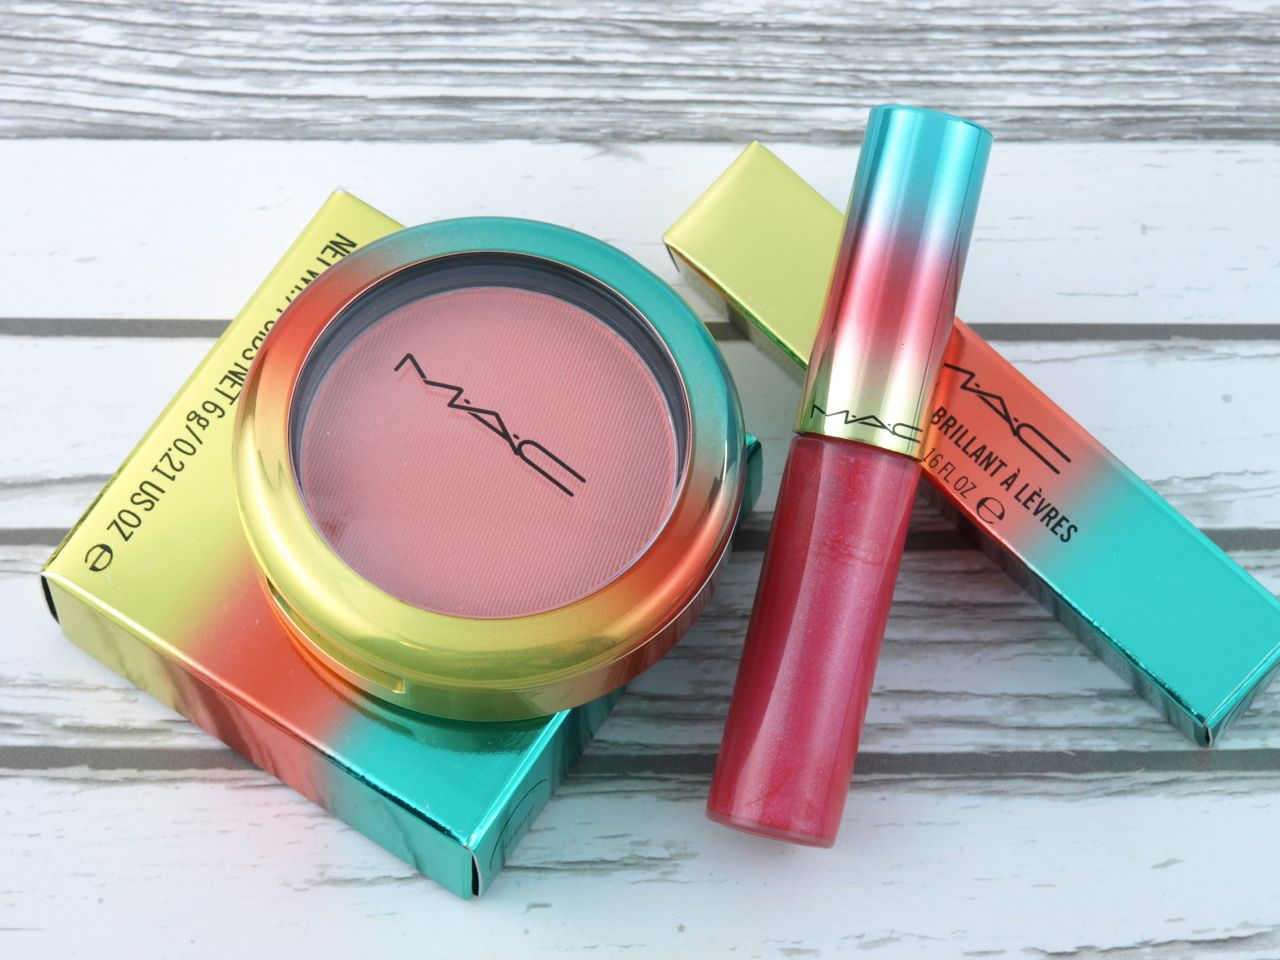 """Mac Wash & Dry Lipglass in """"Domestic Diva"""" & Powder Blush in """"Hipness"""": Review and Swatches"""